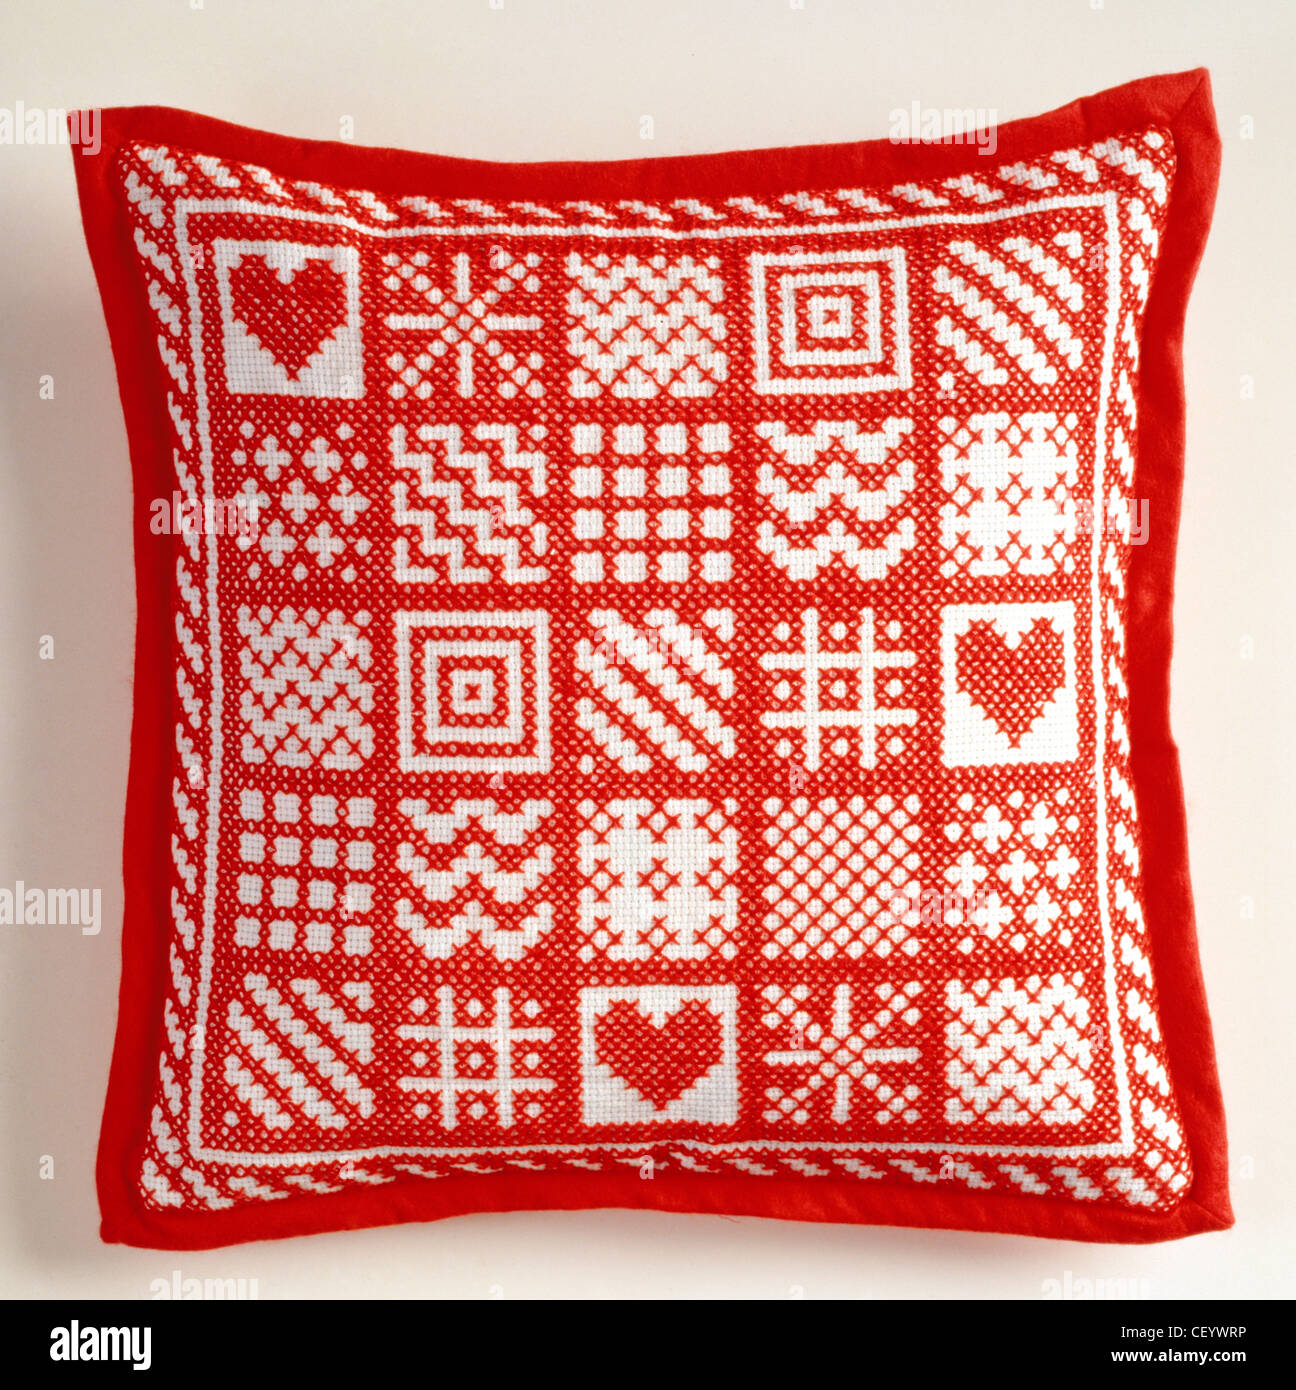 Embroidered Cushion Embroidery Stock Photos & Embroidered Cushion ...